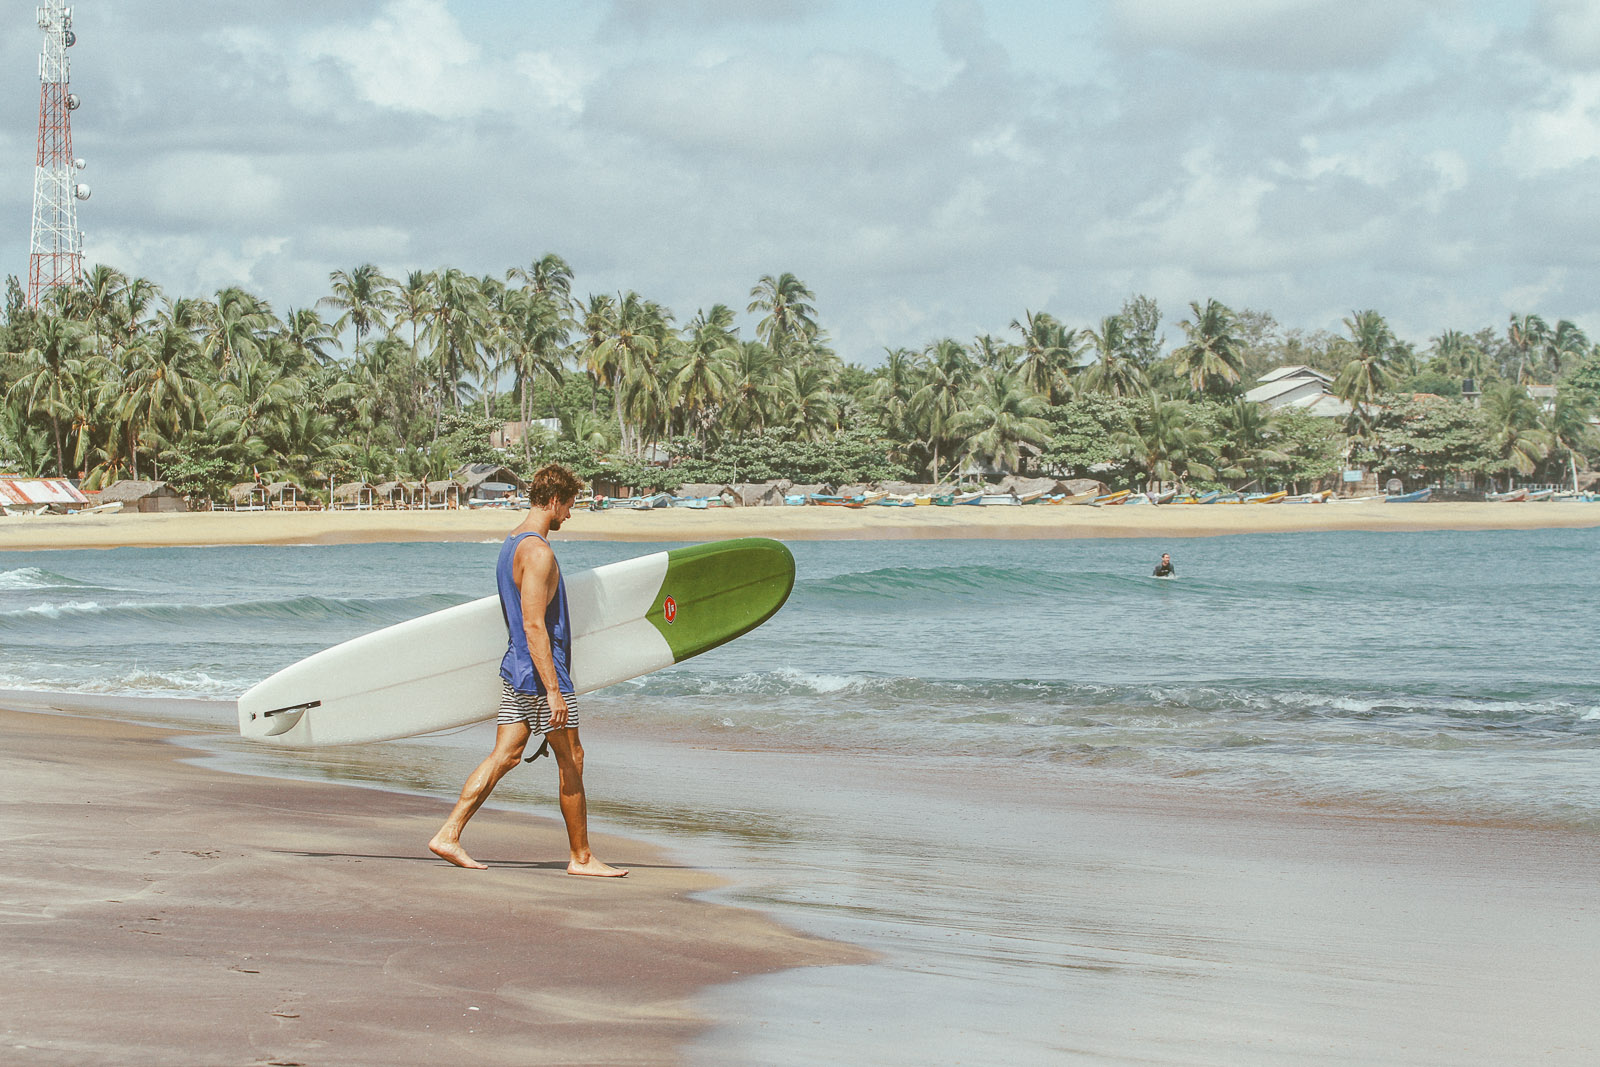 Sri Lanka-Hikkaduwa-Midigama-Aragum Bay-Sunshinestories-surf-travel-blog-IMG_0398